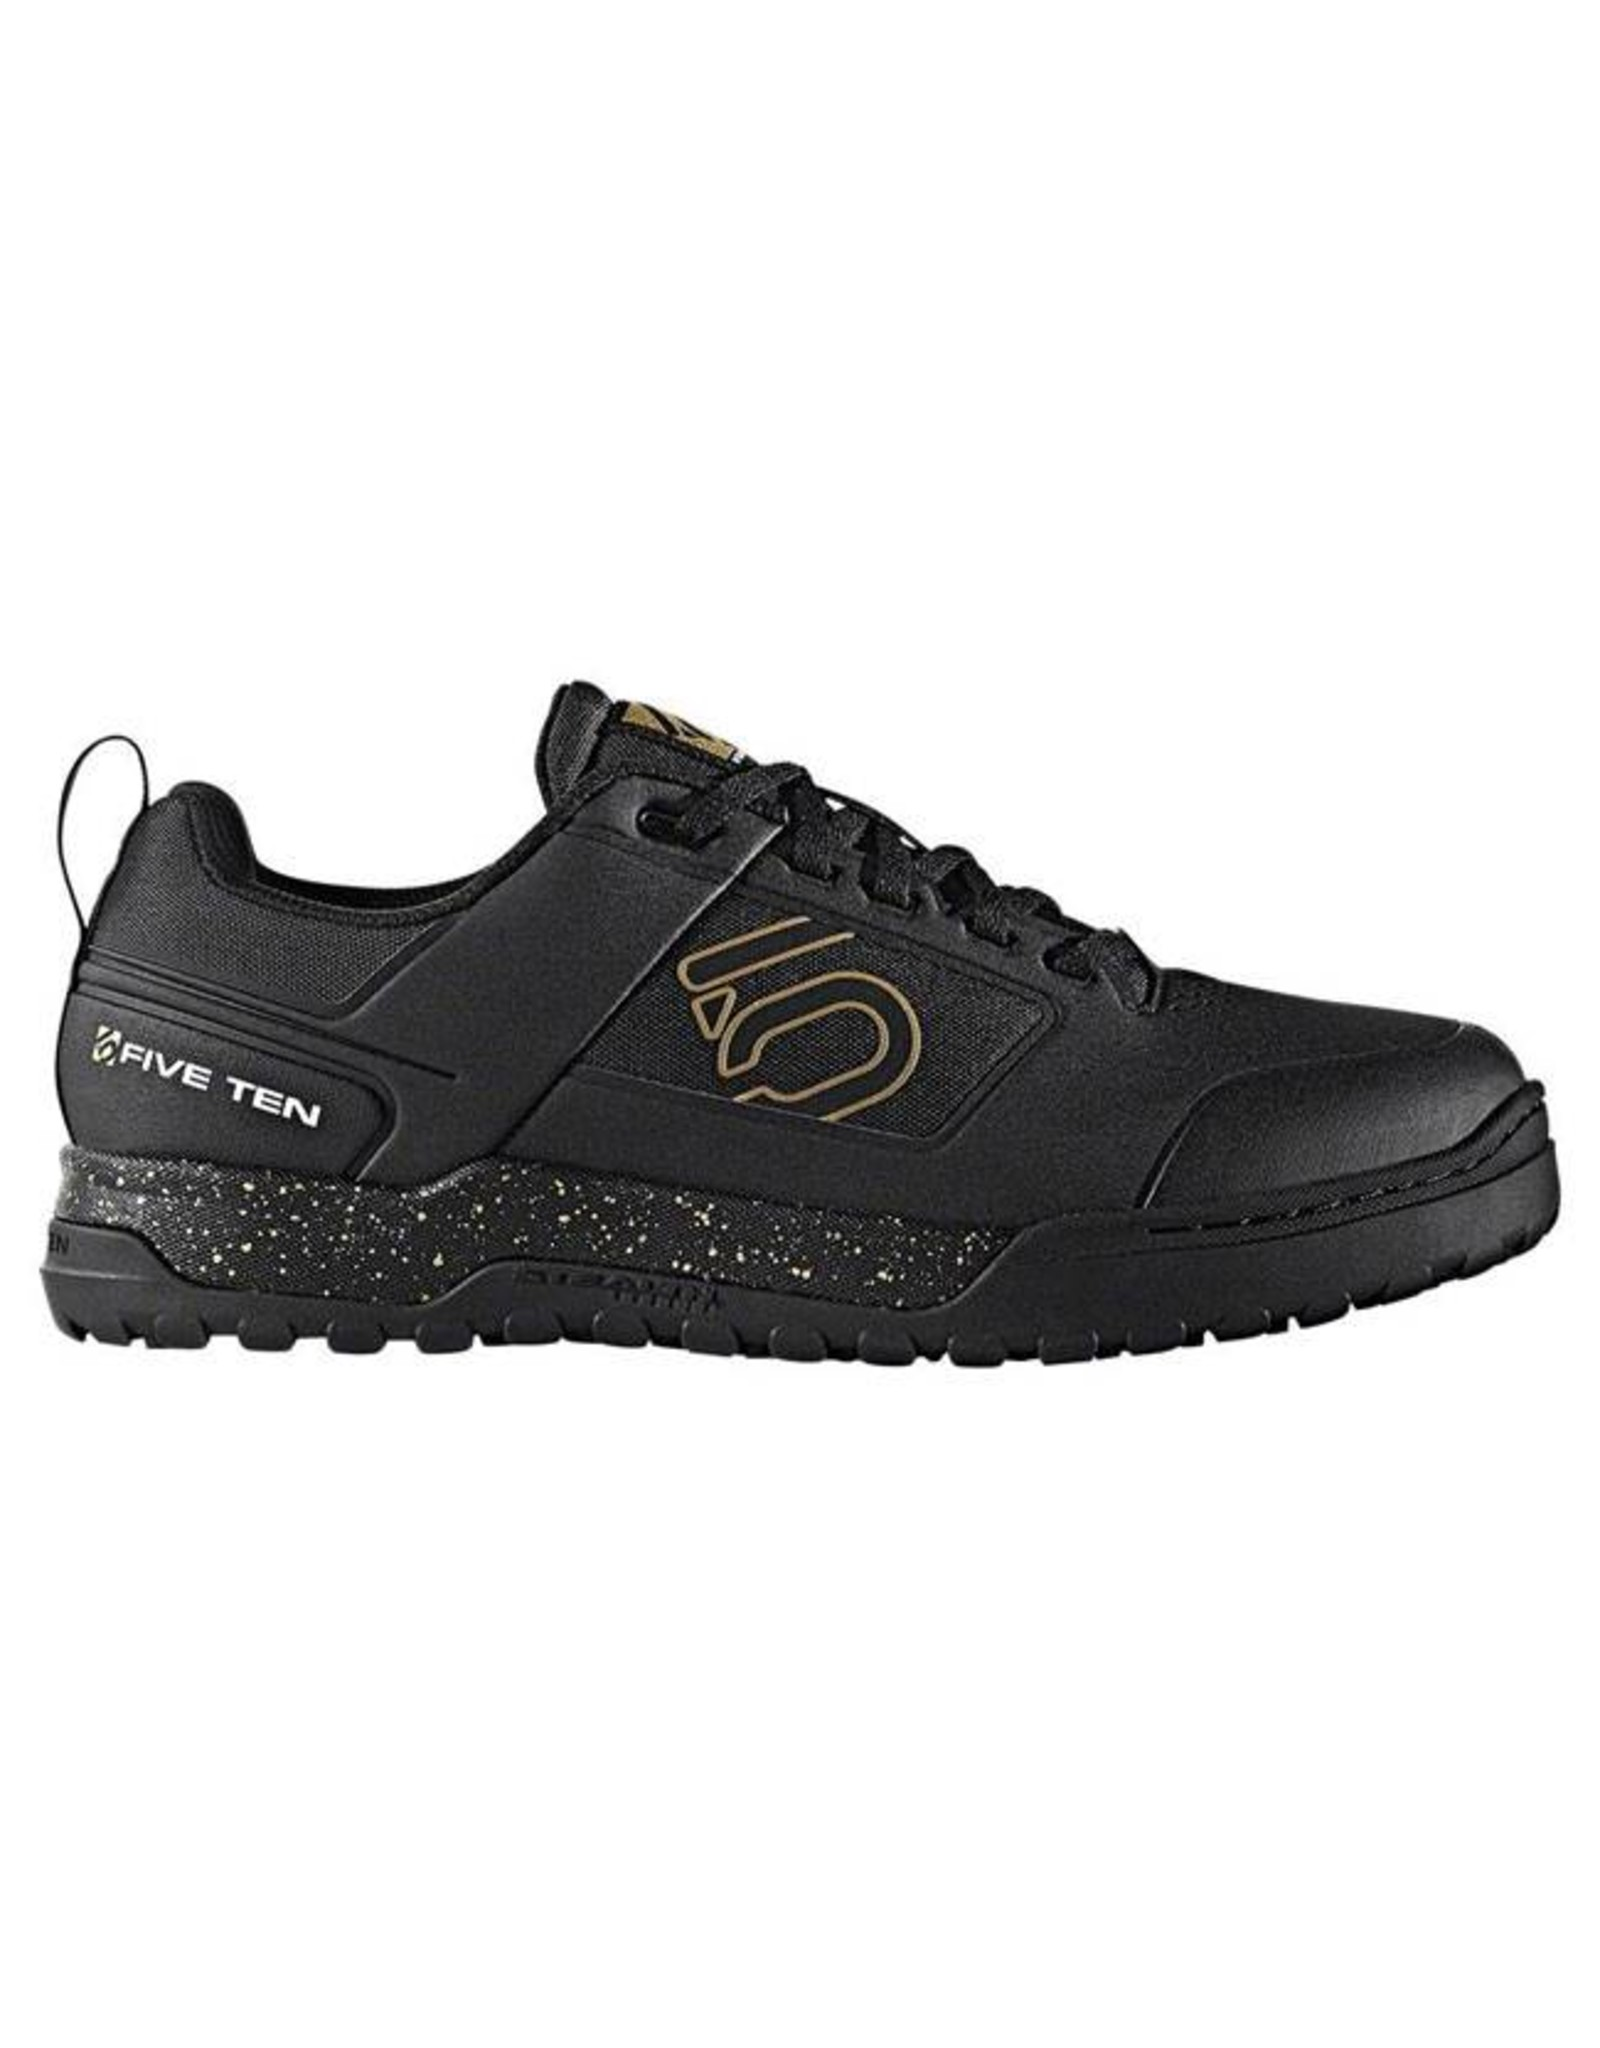 Five Ten Five Ten Impact Pro Men's Flat Pedal Shoe: Black/Gold 11.5